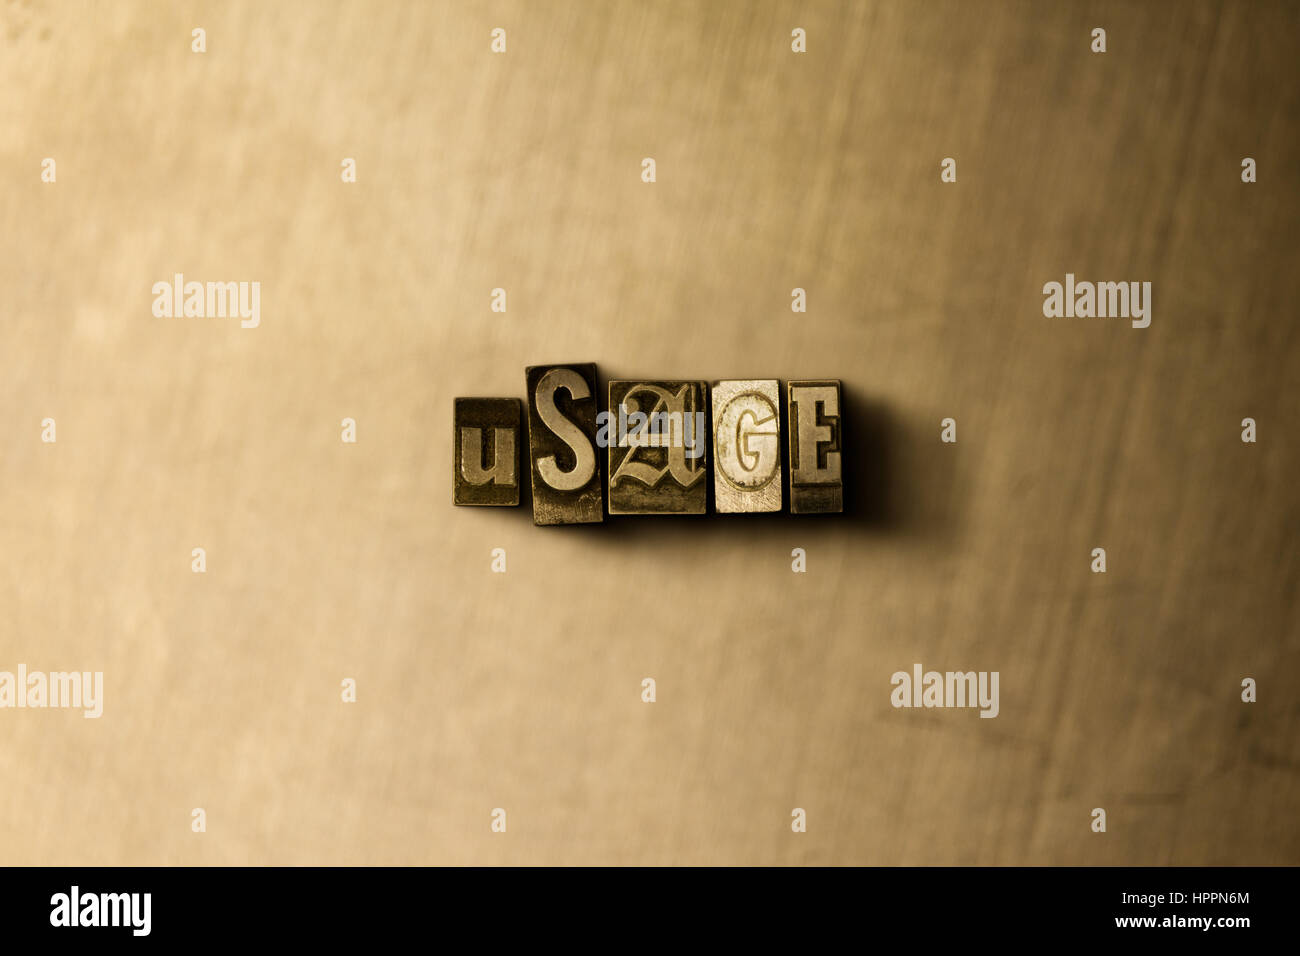 USAGE - close-up of grungy vintage typeset word on metal backdrop. Royalty free stock illustration.  Can be used - Stock Image